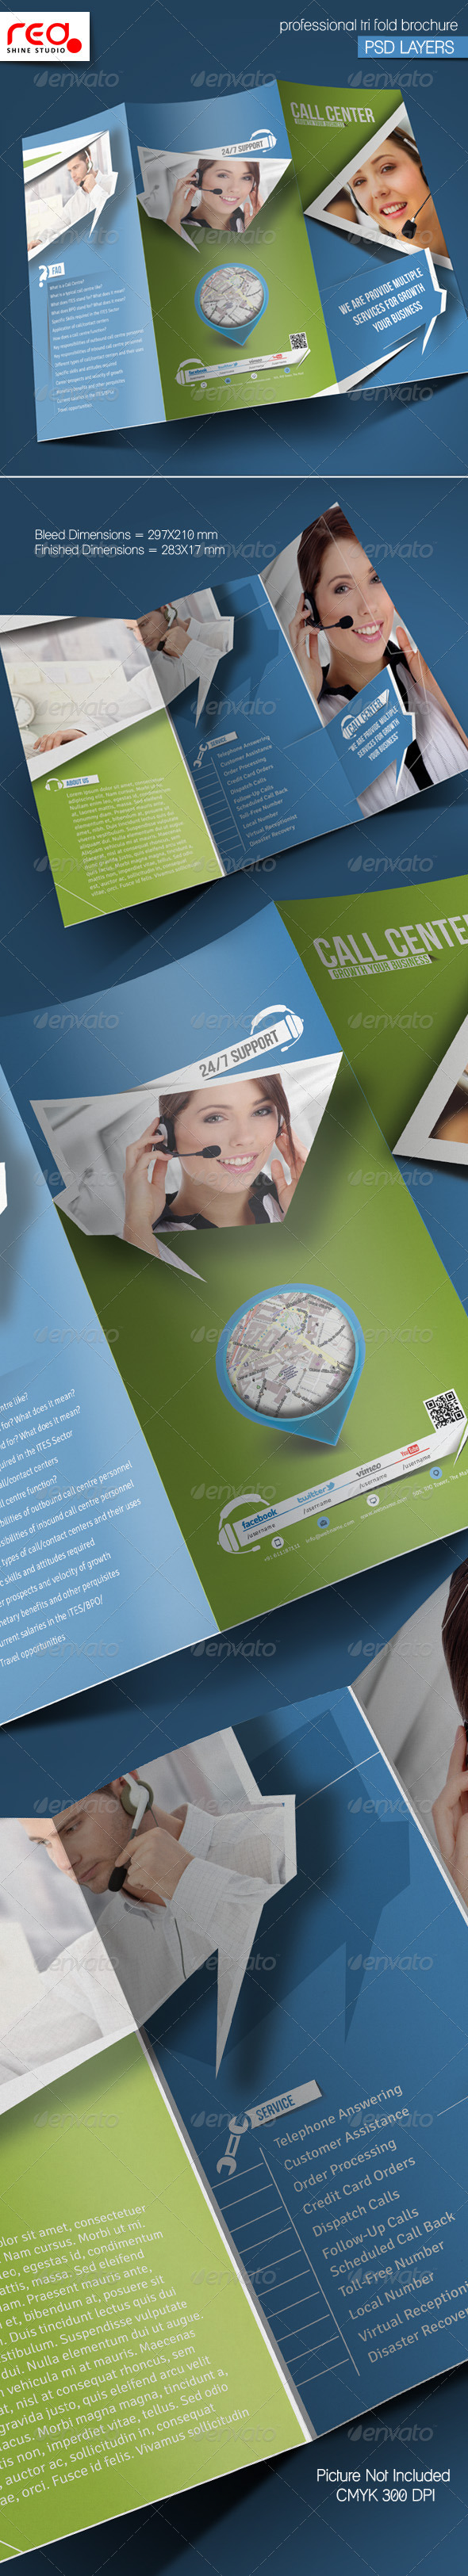 GraphicRiver Customer Support Trifold Brochure Template 5324354